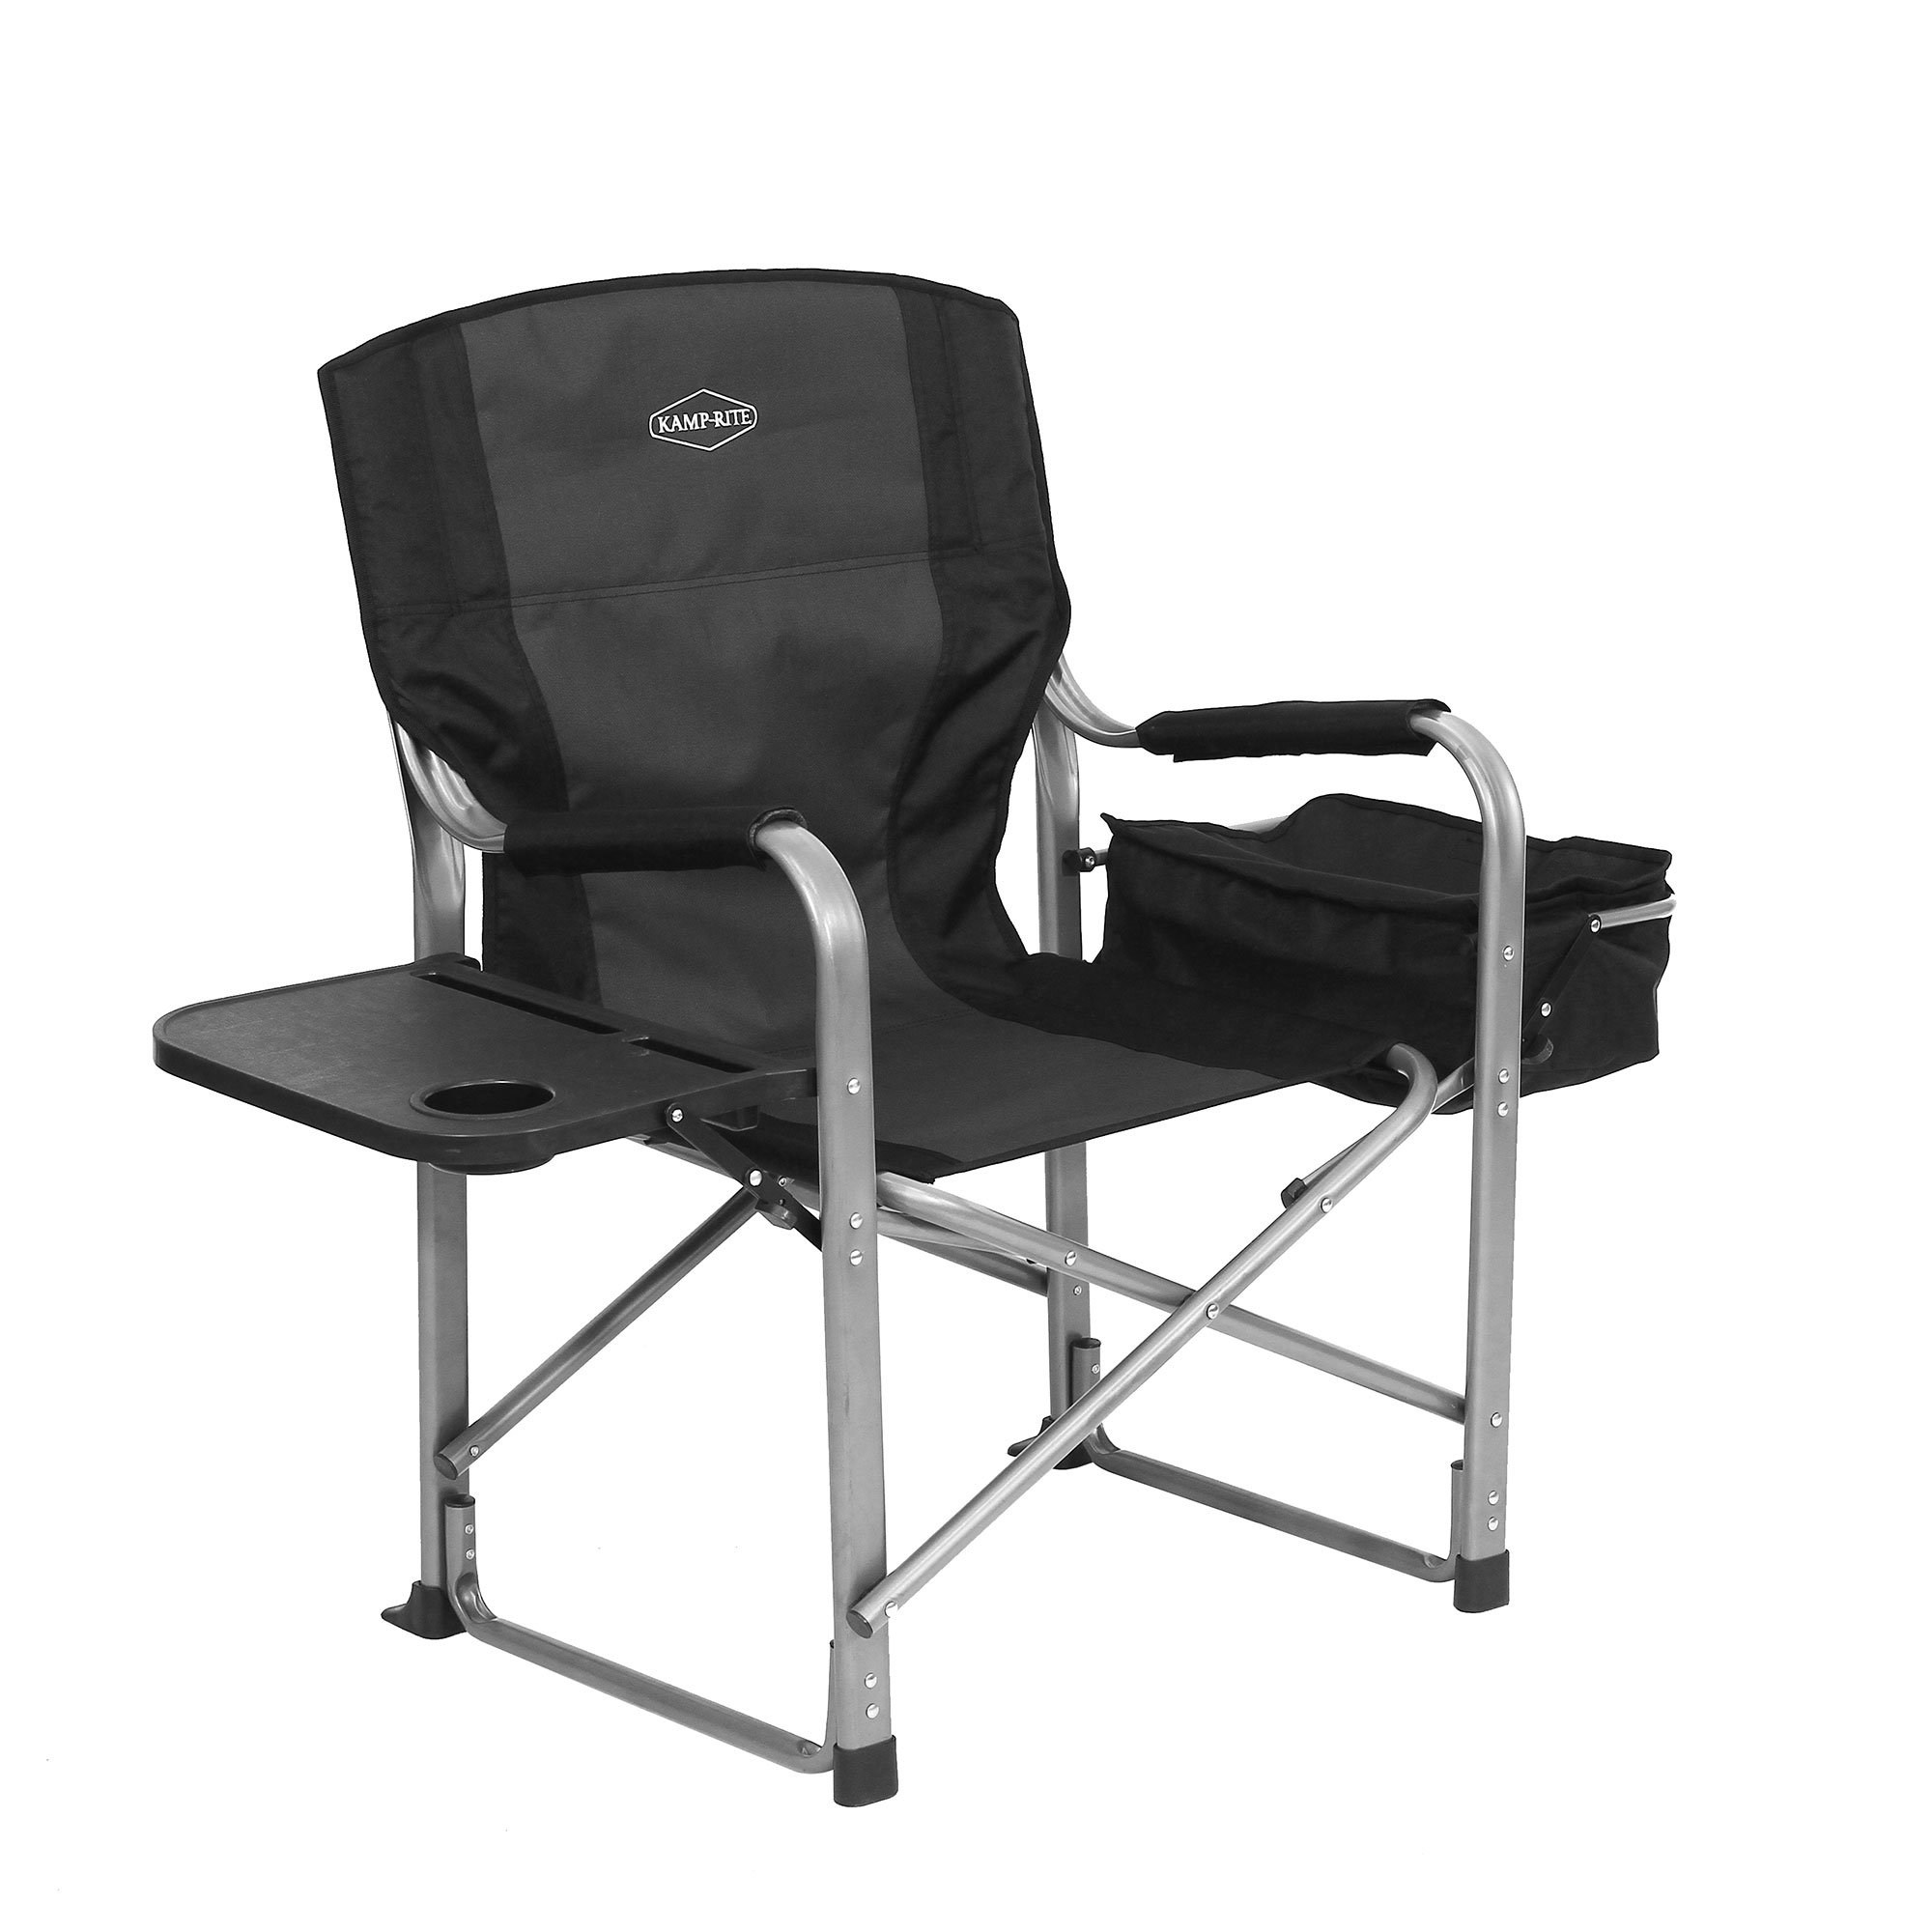 Kamp-Rite Outdoor Camp Folding Director's Chair with Table, Cooler, and Opener - image 1 de 5